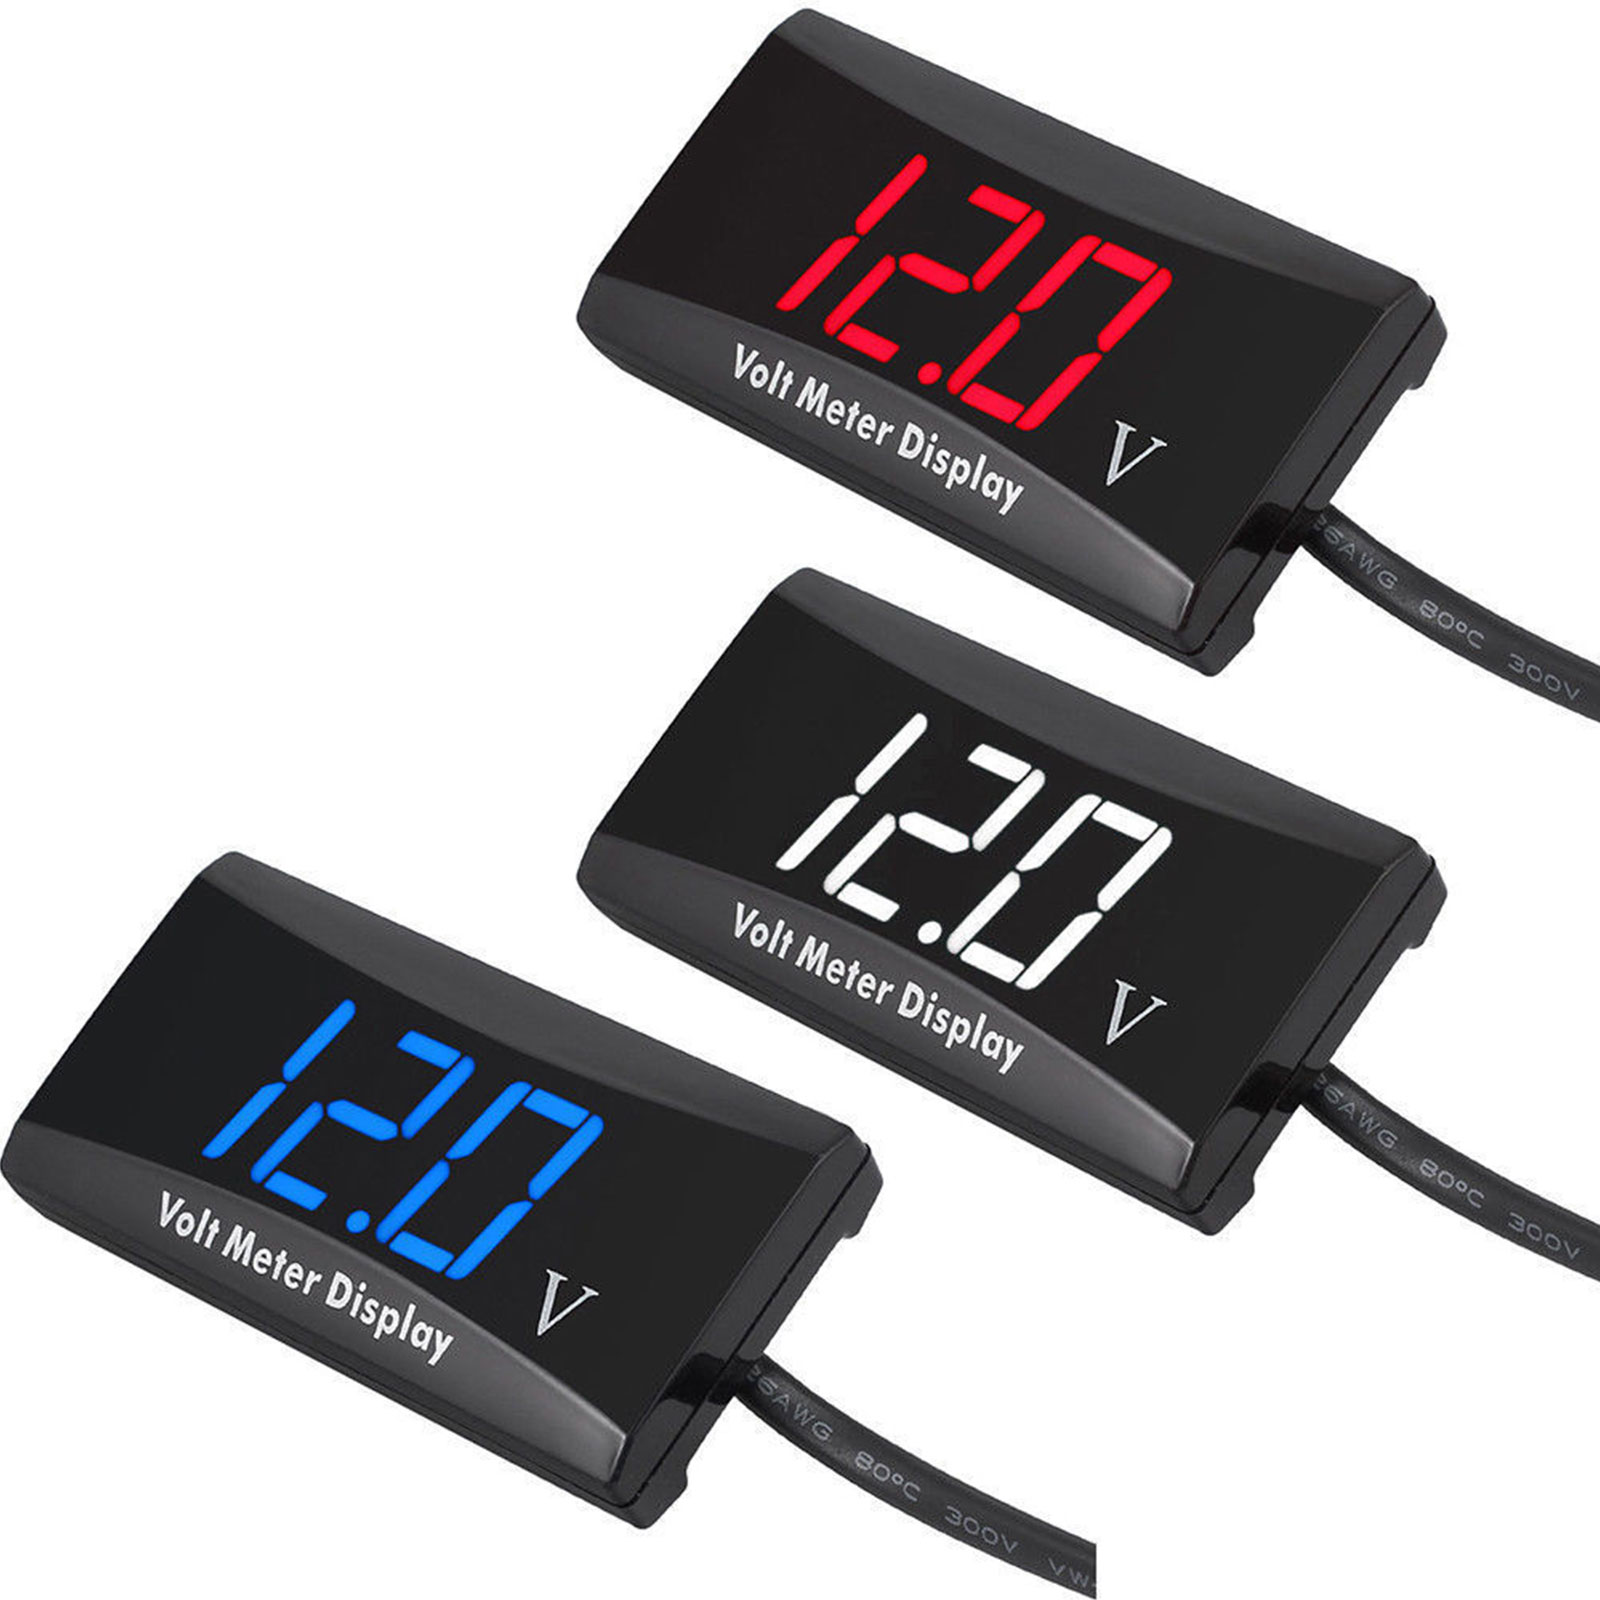 12 Volt Digital Voltmeter : Led digital display voltmeter car motorcycle voltage volt